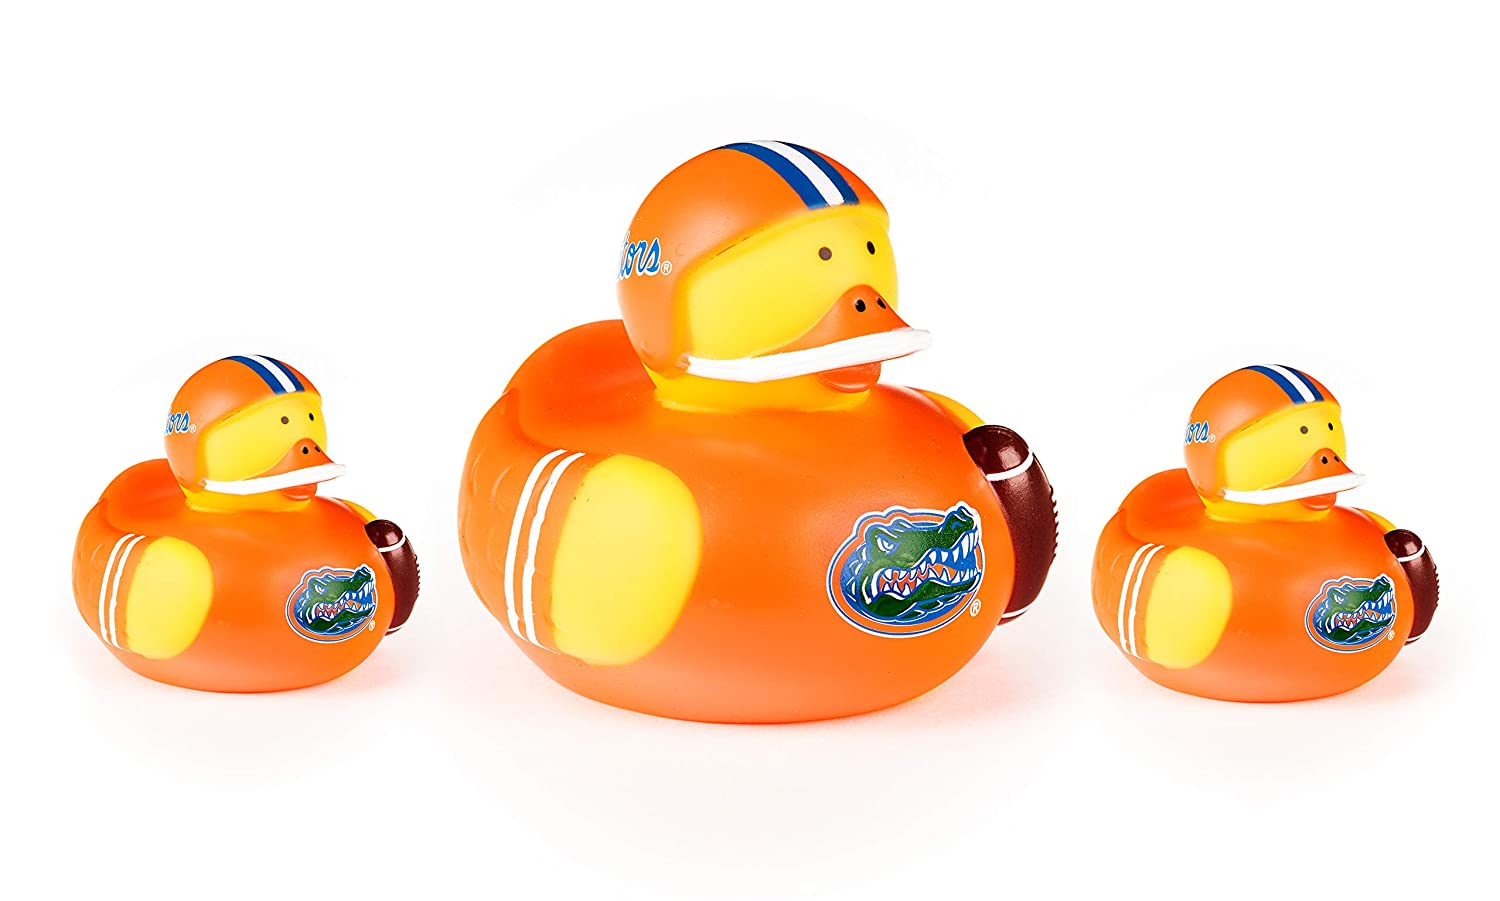 BSI NCAA Unisex NCAA 3 Pack All Star Ducks Pack of 3-1 Large, 2 Small